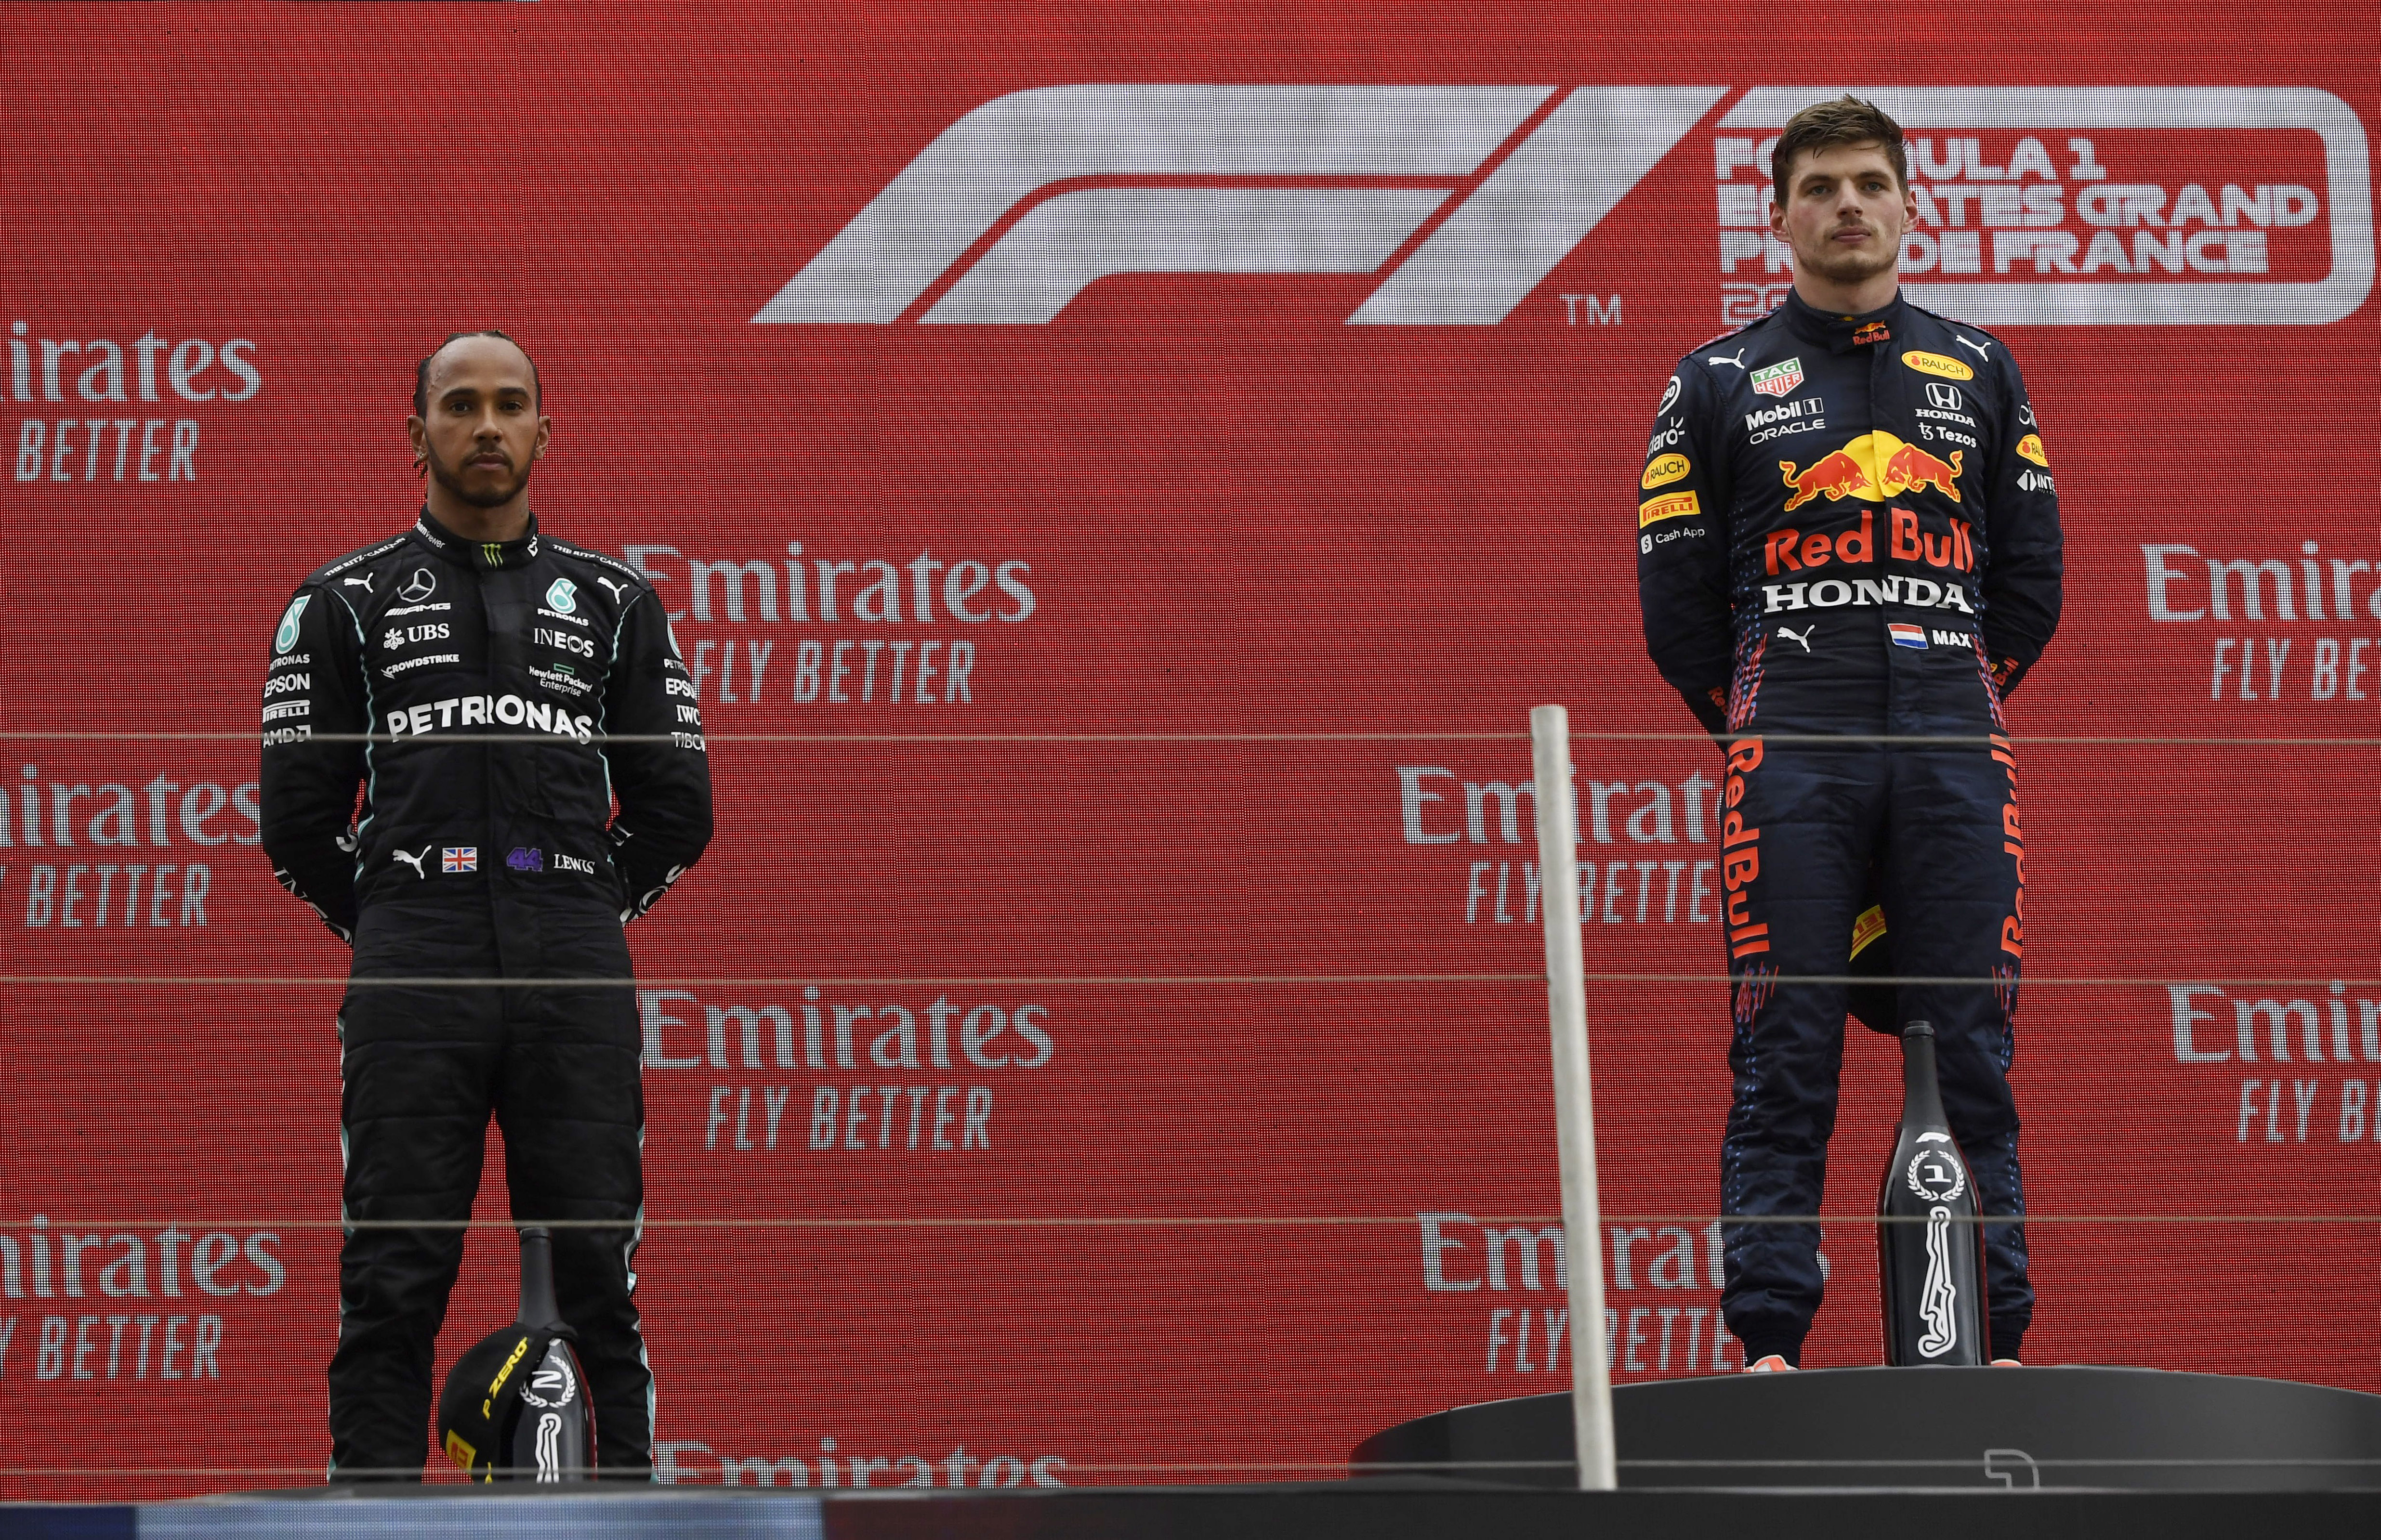 Formula One F1 - French Grand Prix - Circuit Paul Ricard, Le Castellet, France - June 20, 2021 Red Bull's Max Verstappen celebrates on the podium after winning the race alongside second placed Mercedes' Lewis Hamilton Pool via REUTERS/Nicolas Tucat